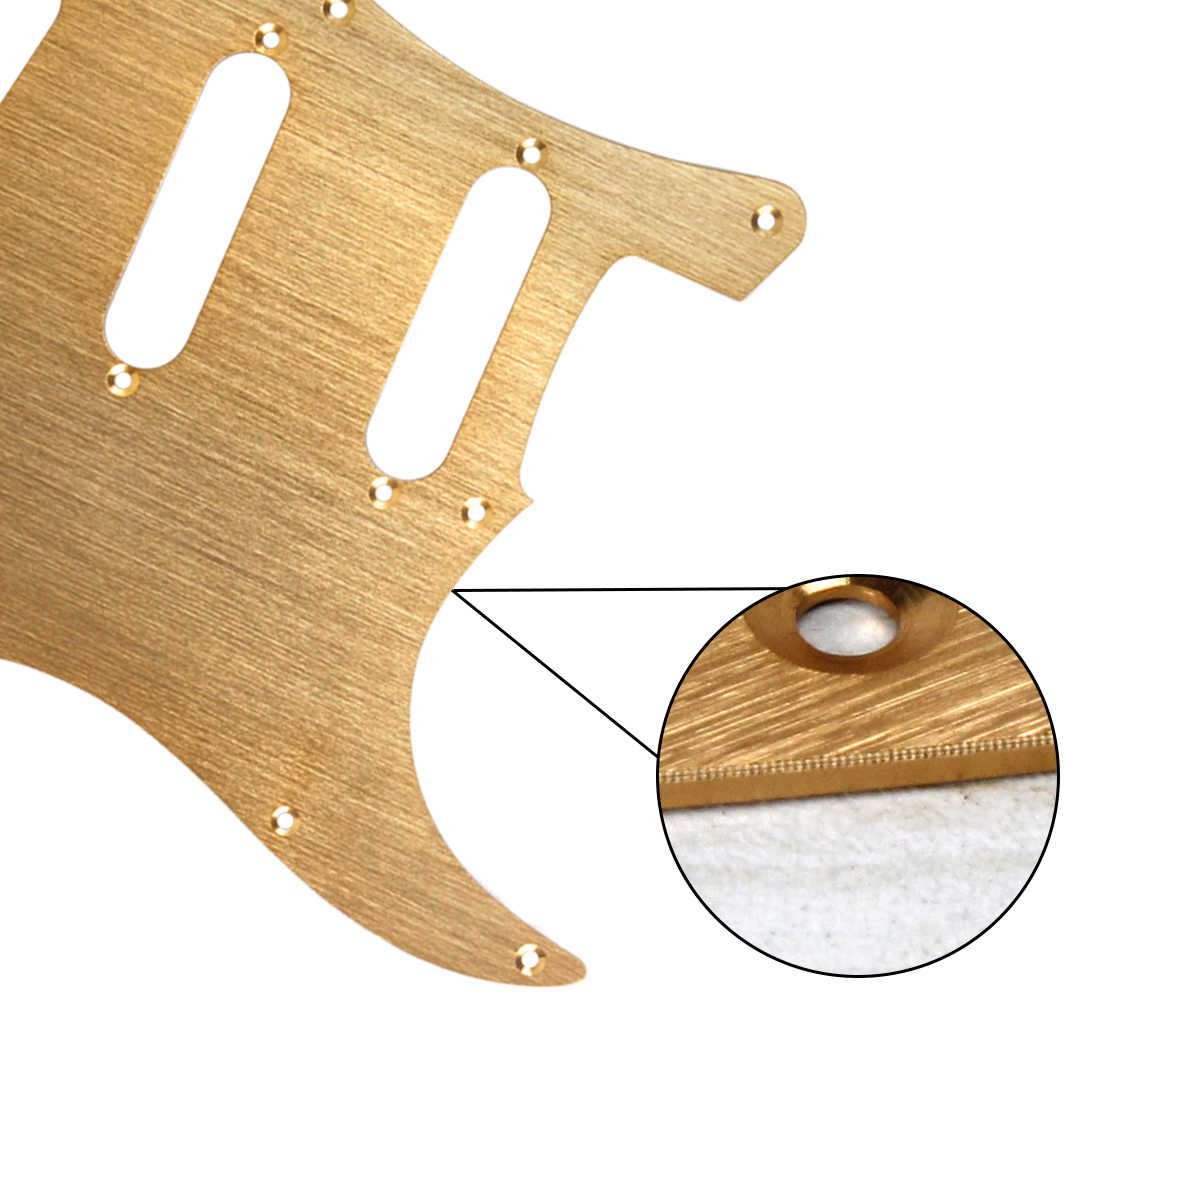 FLEOR Gold Metal Pickguard 11 Hole SSS Electric Guitar Pick Guard Scratch Plate with Screws for Strat Guitar Parts